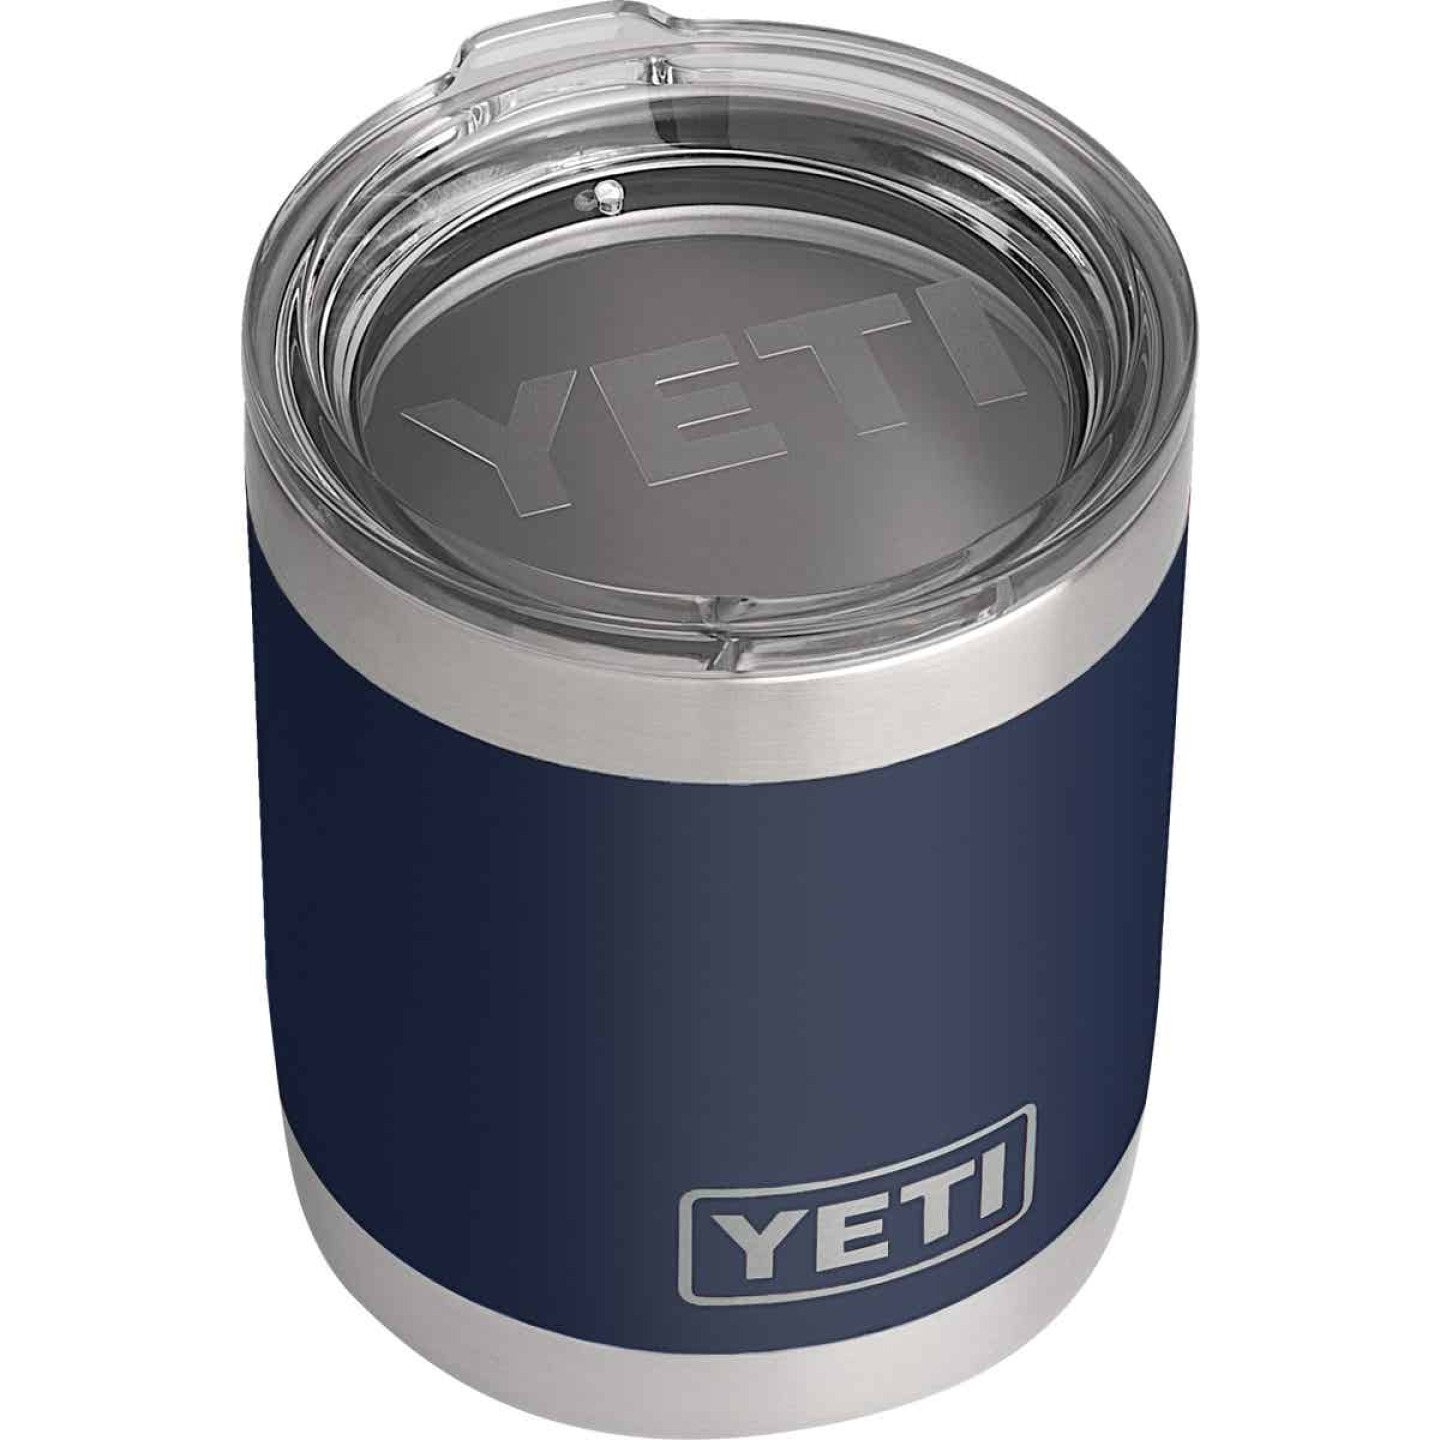 Yeti Rambler Lowball 10 Oz. Navy Blue Stainless Steel Insulated Tumbler Image 1